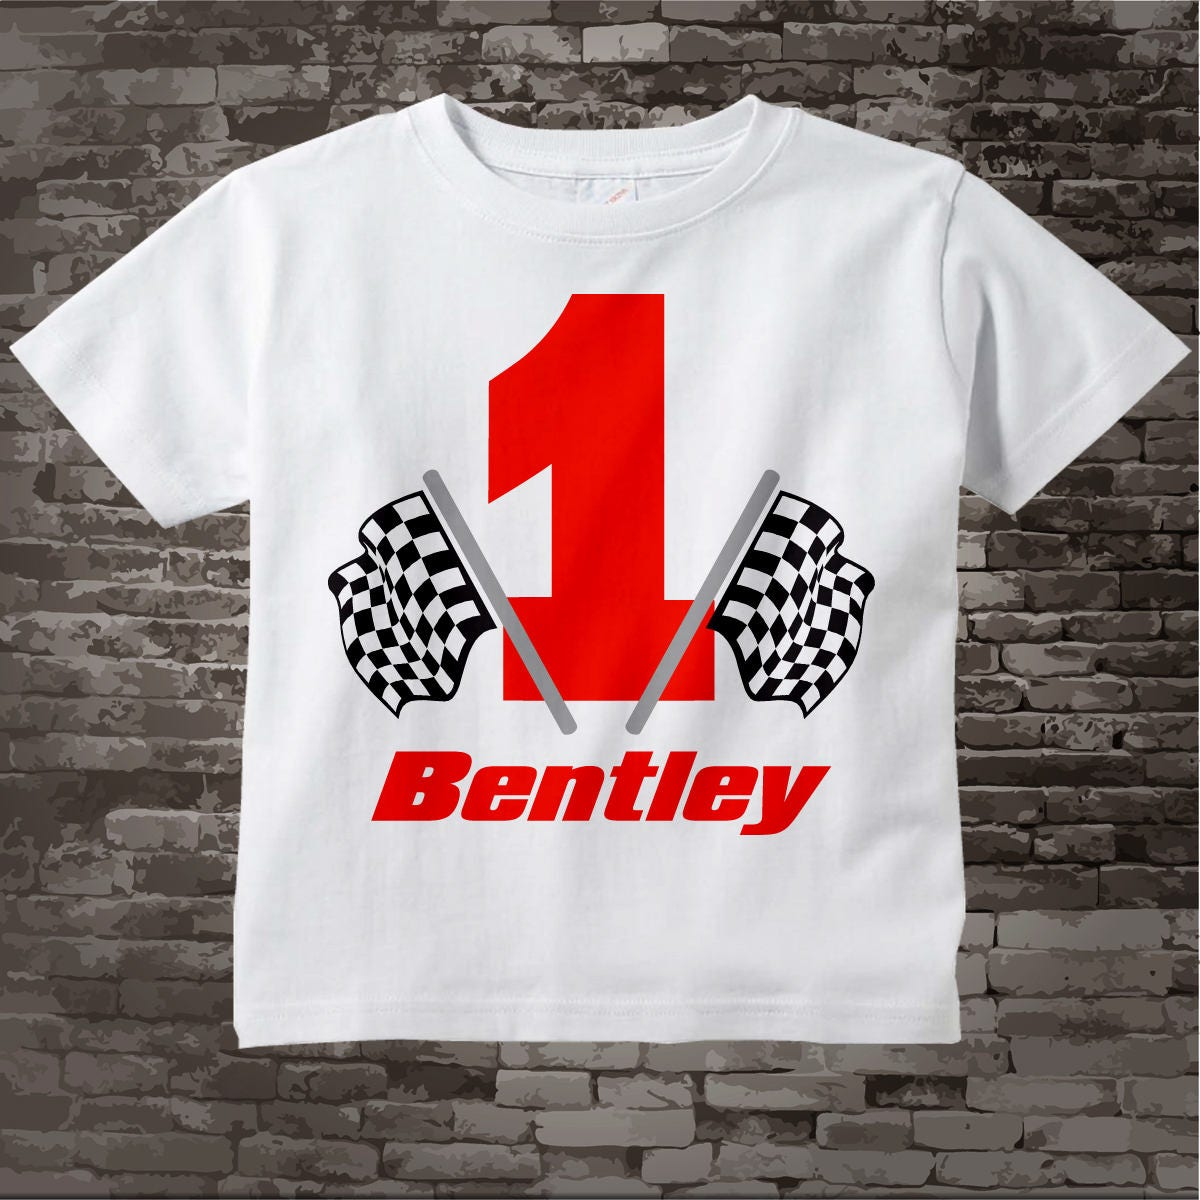 1 Year Old Birthday First Outfit Boy Checkered Flag Racer Shirt Personalized Racing Theme 05252012b